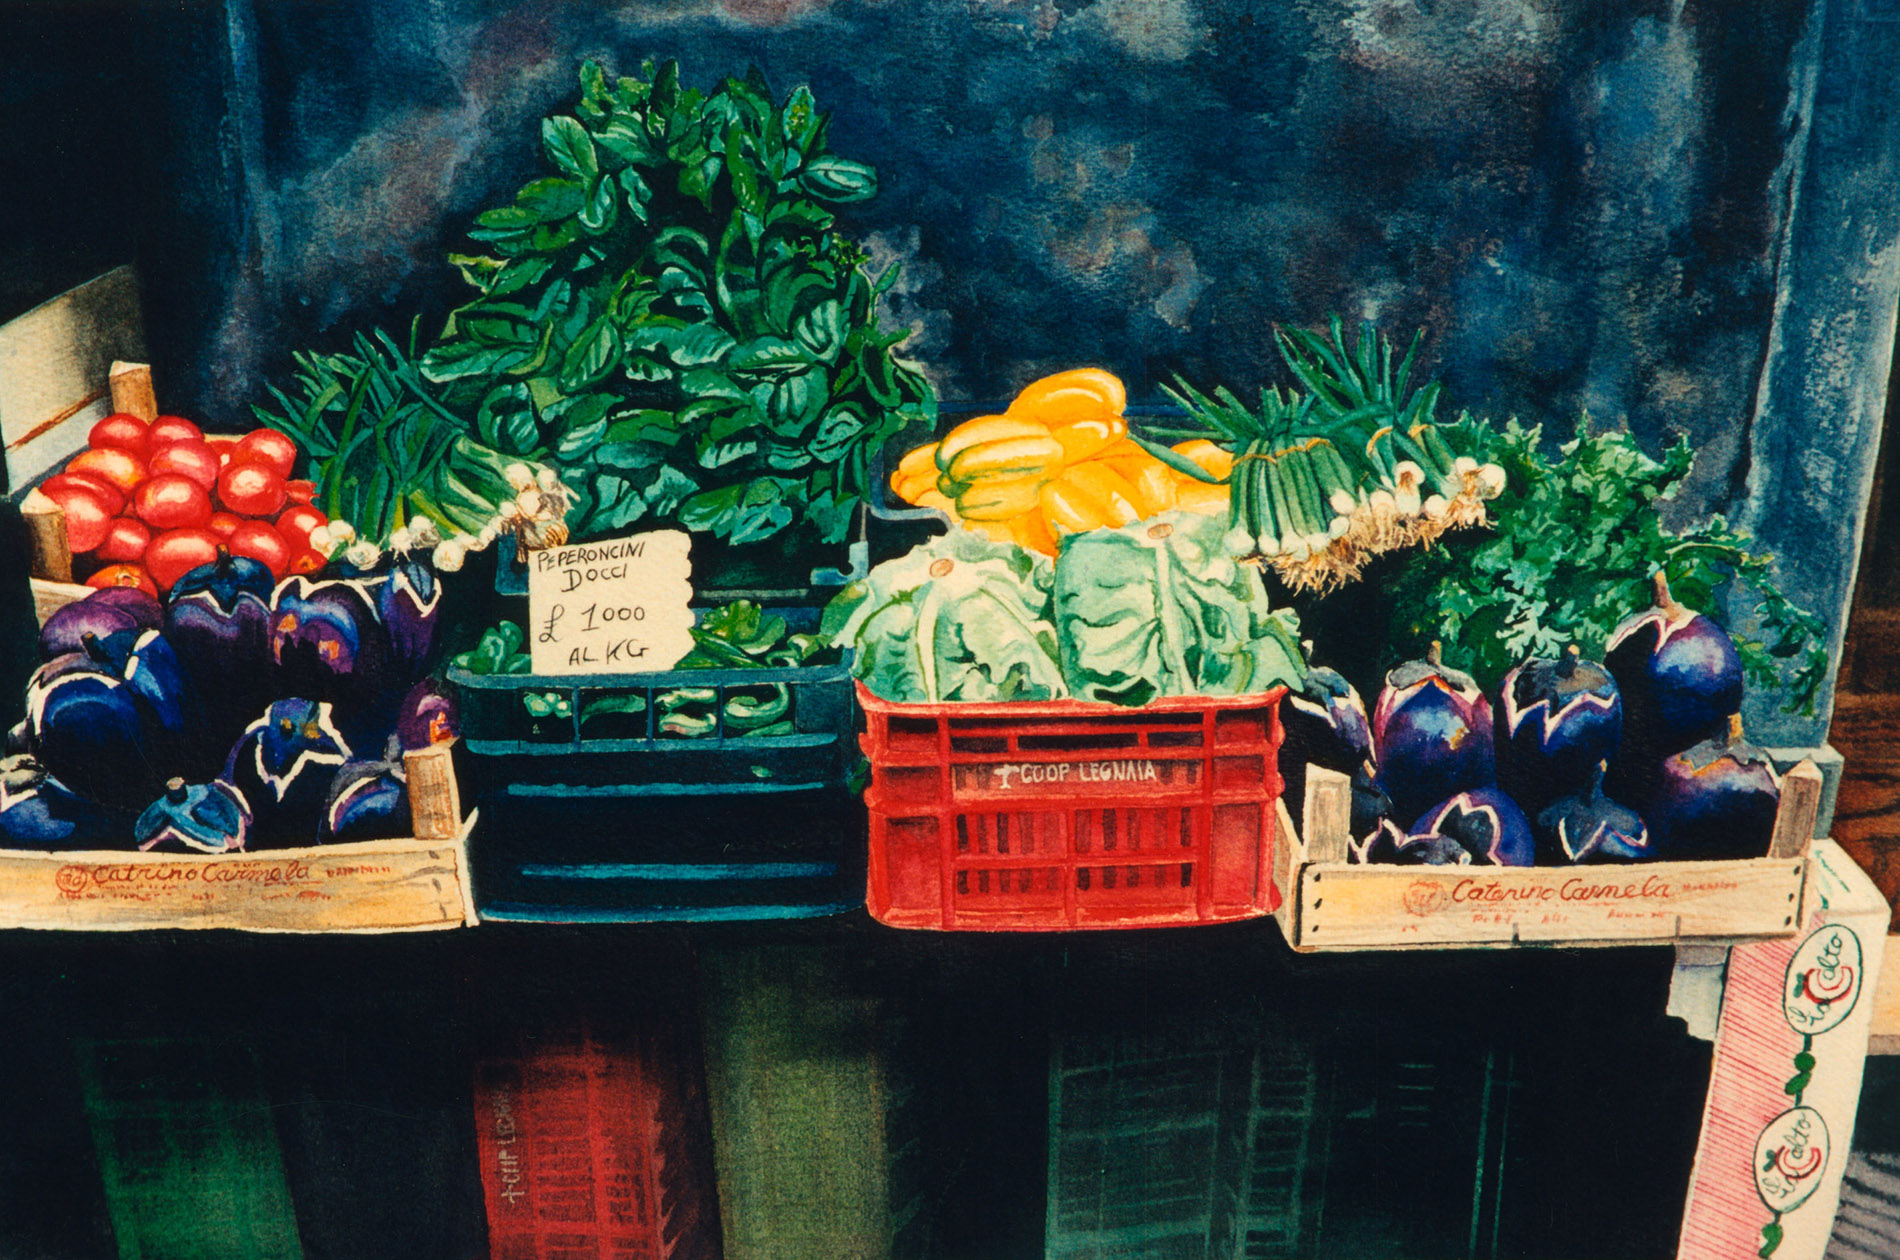 italian framer's market vegetable stand watercolor